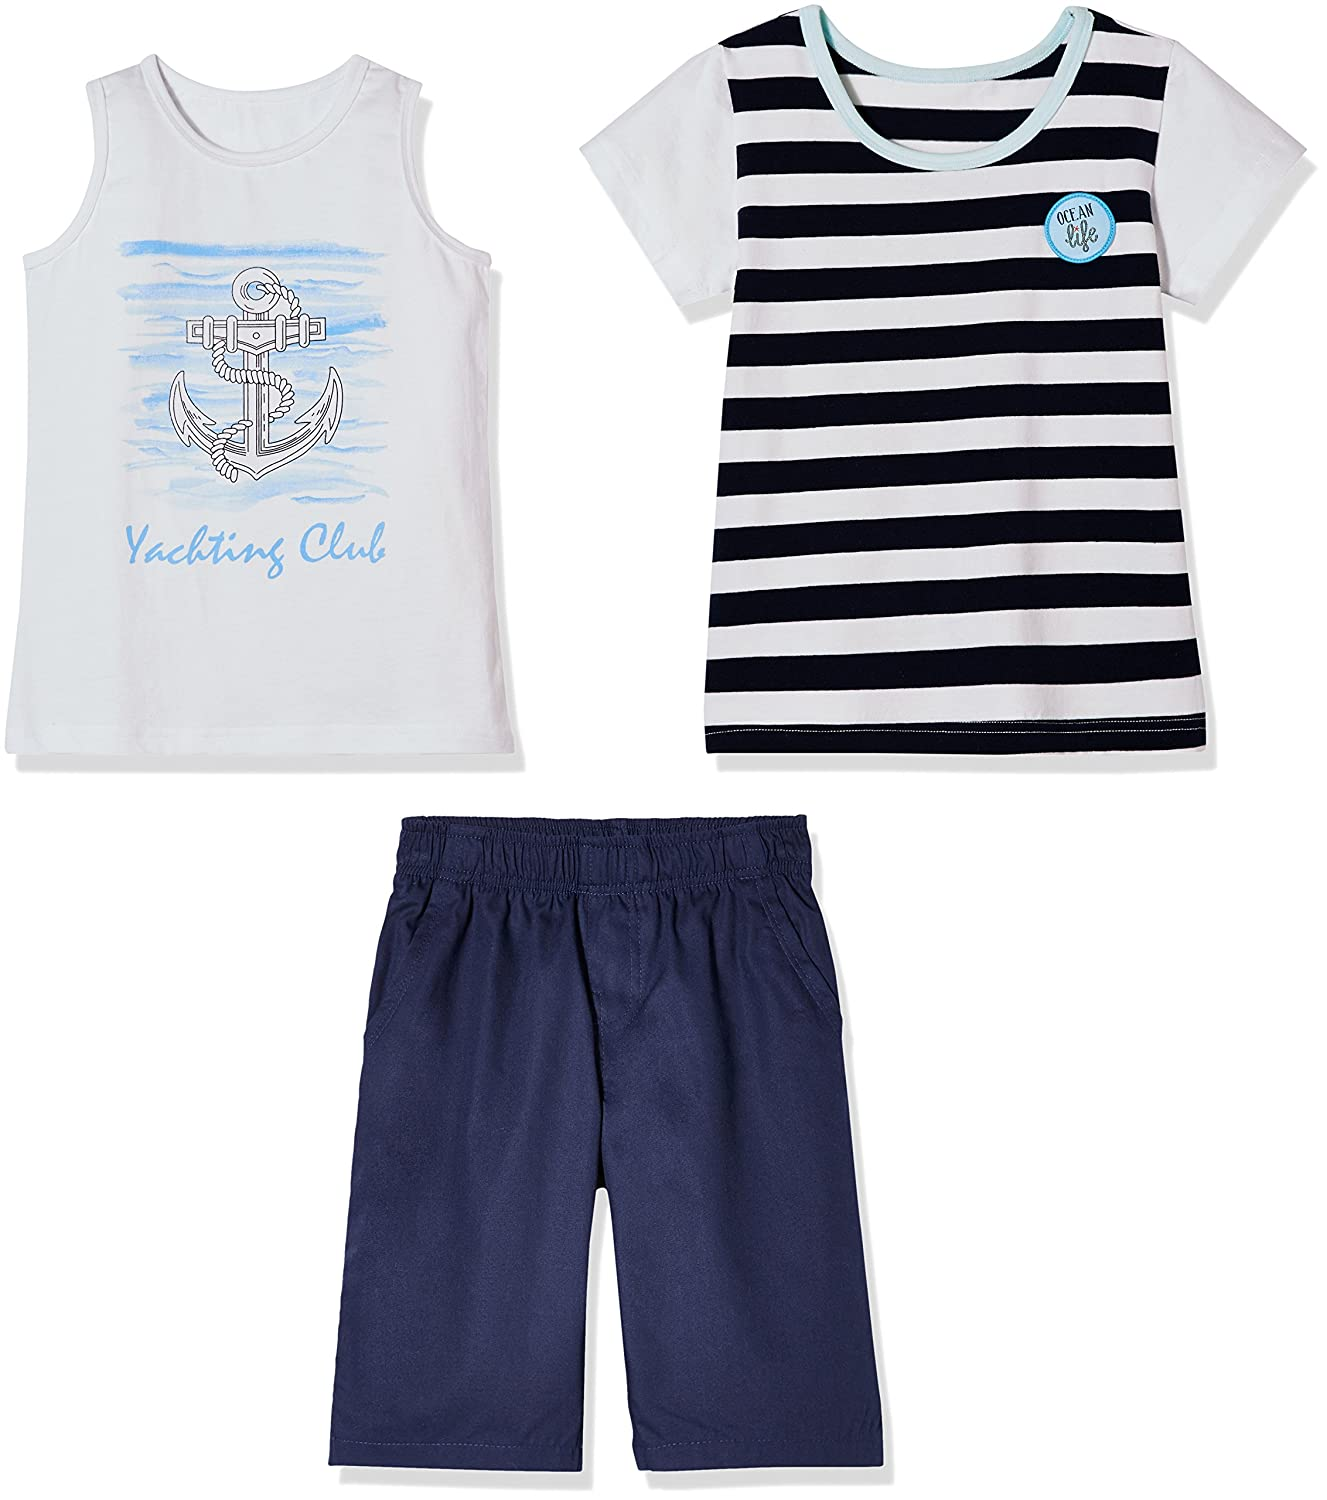 Classic Stripe Tee and Navy Leisure Shorts for Toddlers and Little Boy Sprout Star 3-Pcs Set Cotton Anchor Graphic Tank